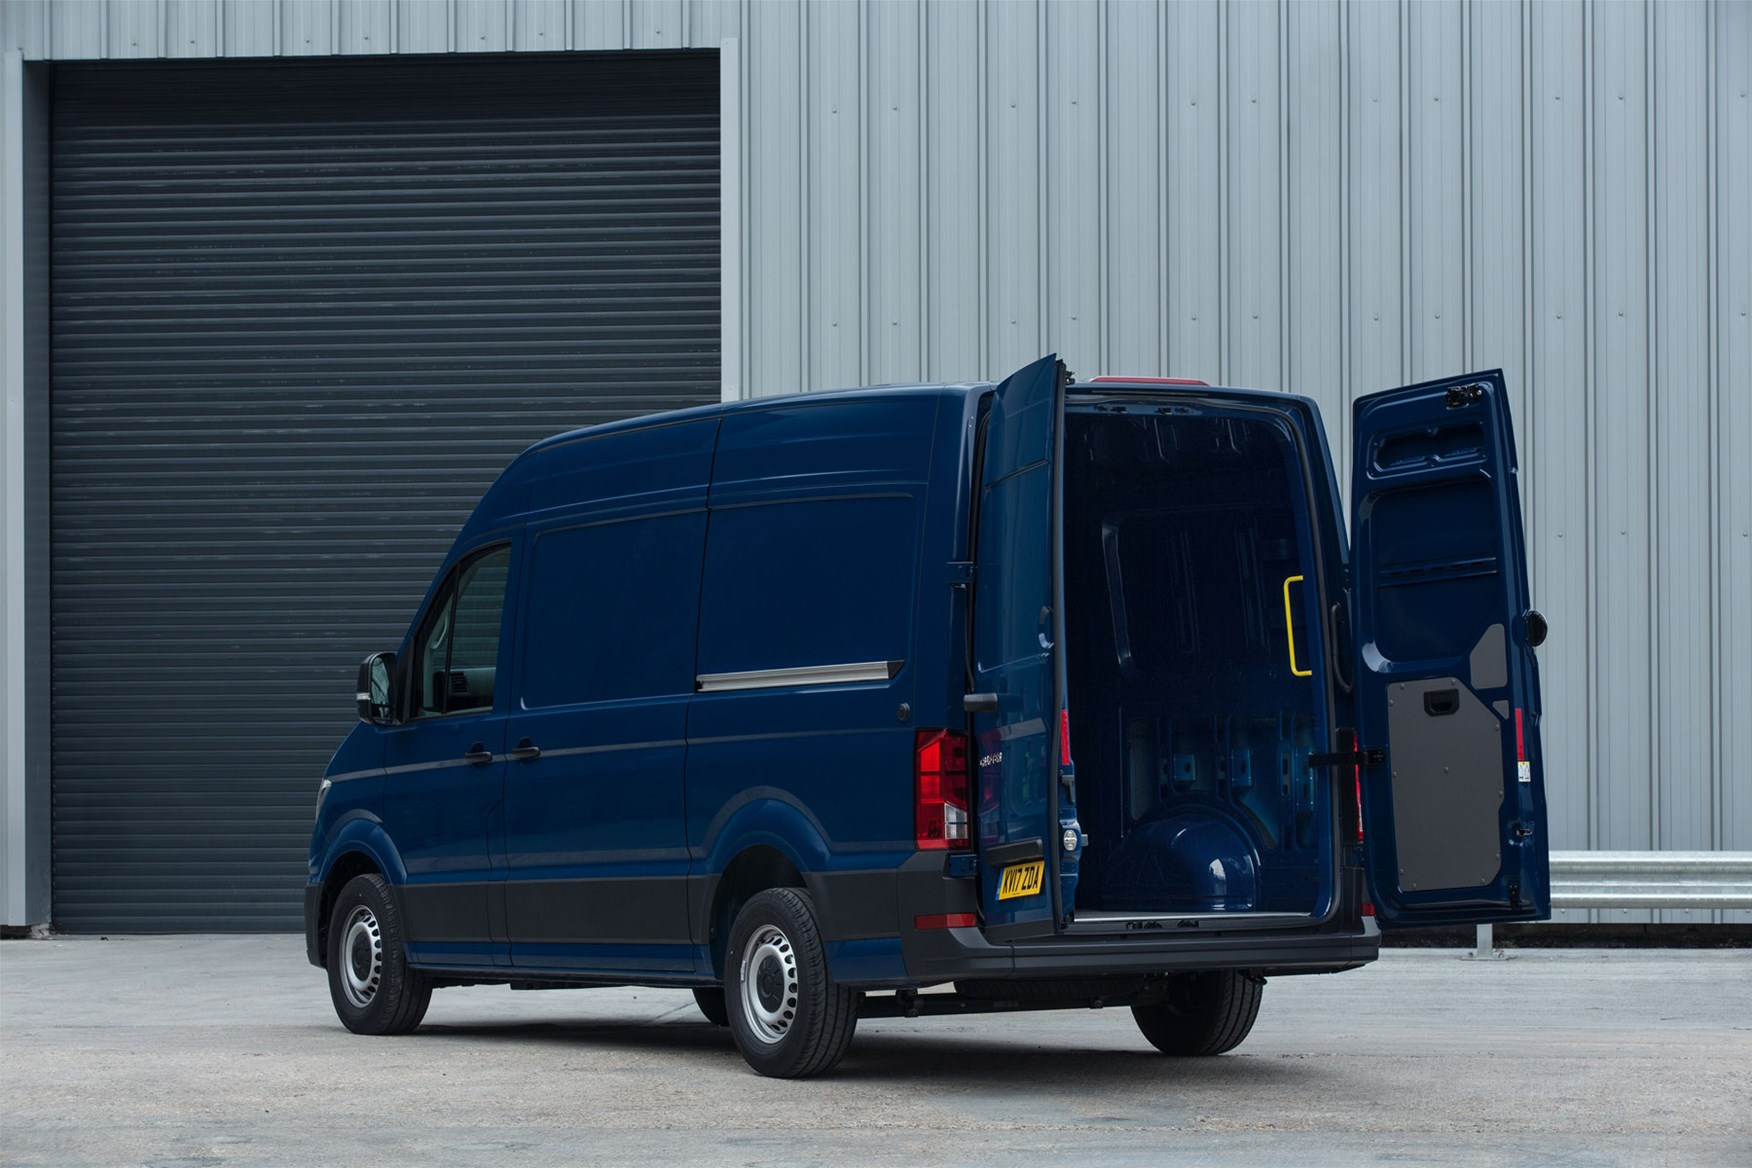 VW Crafter payload info, rear view, doors open, blue